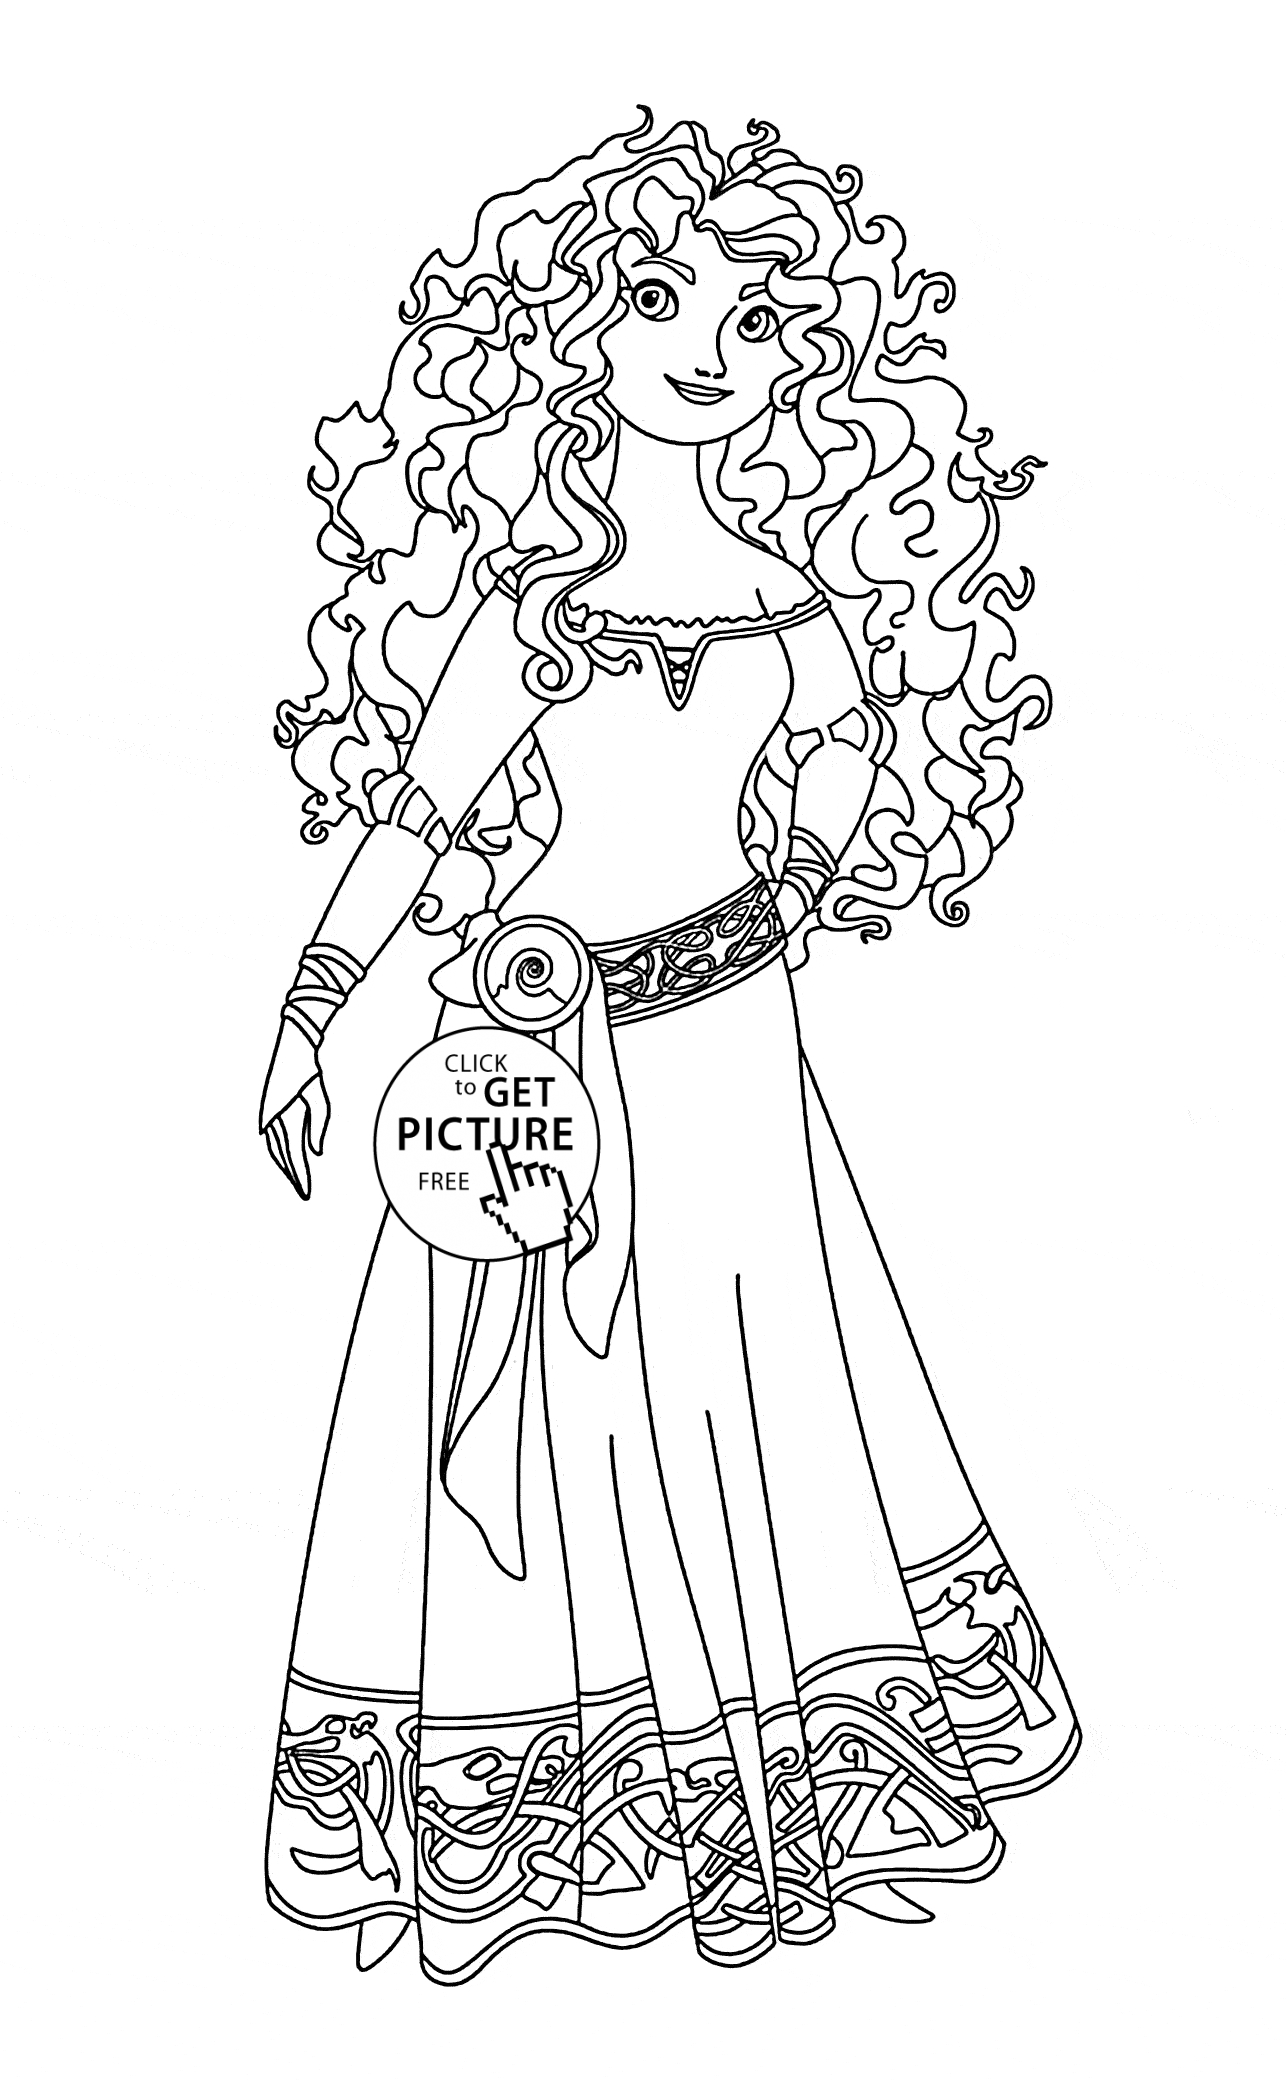 disney princess coloring pages free to print - brave merida coloring page for kids disney princess coloring pages printables free